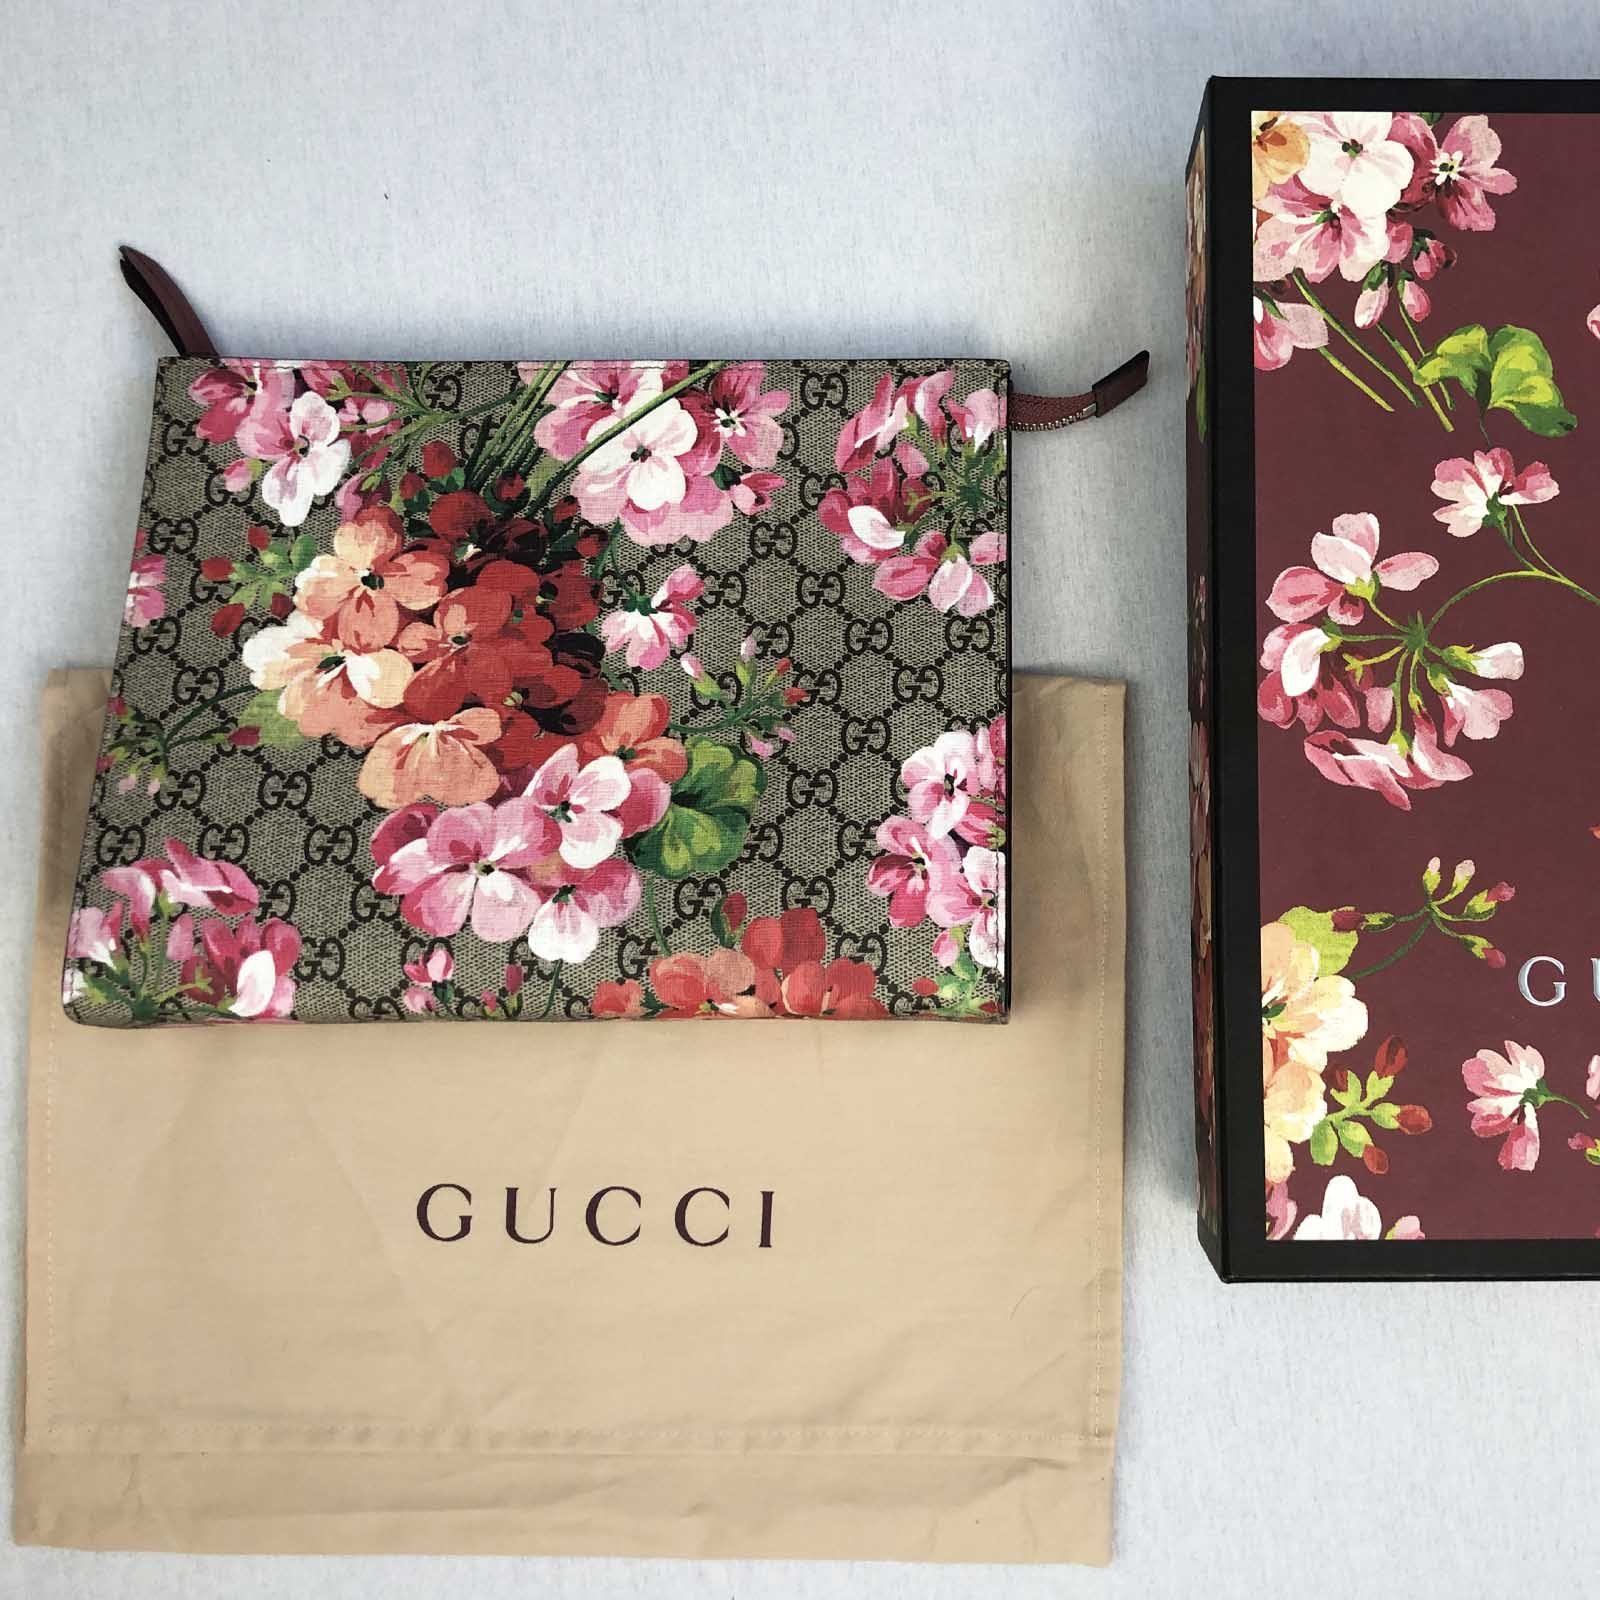 0ad41224 Gucci Blooms Large Cosmetic Pouch / Clutch Bag - Pink Bloom